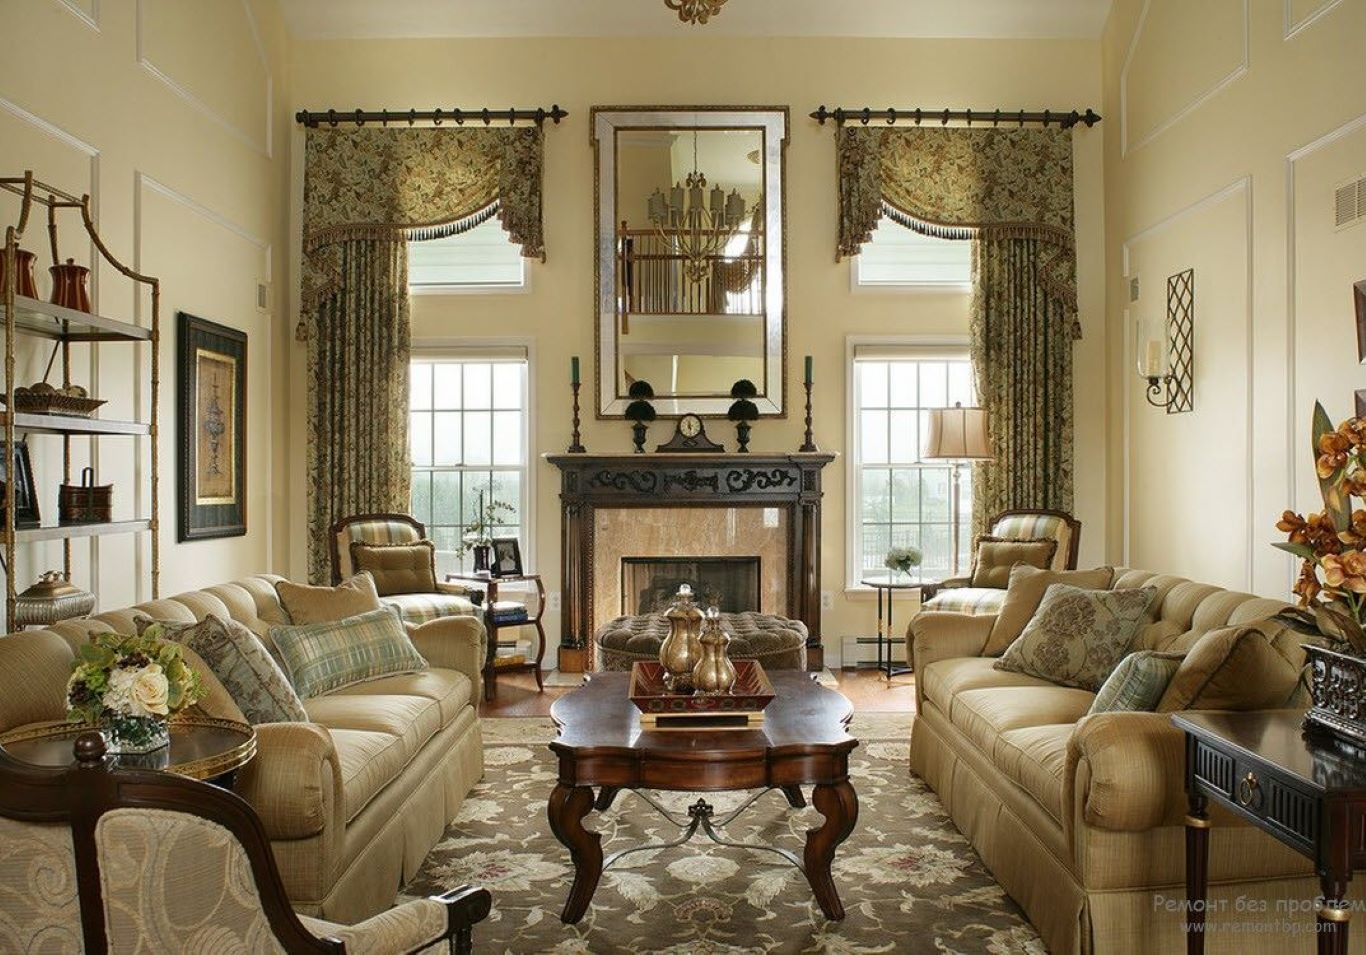 Carved wooden coffee table and patterned fabric sofas complement embellished window curtains.